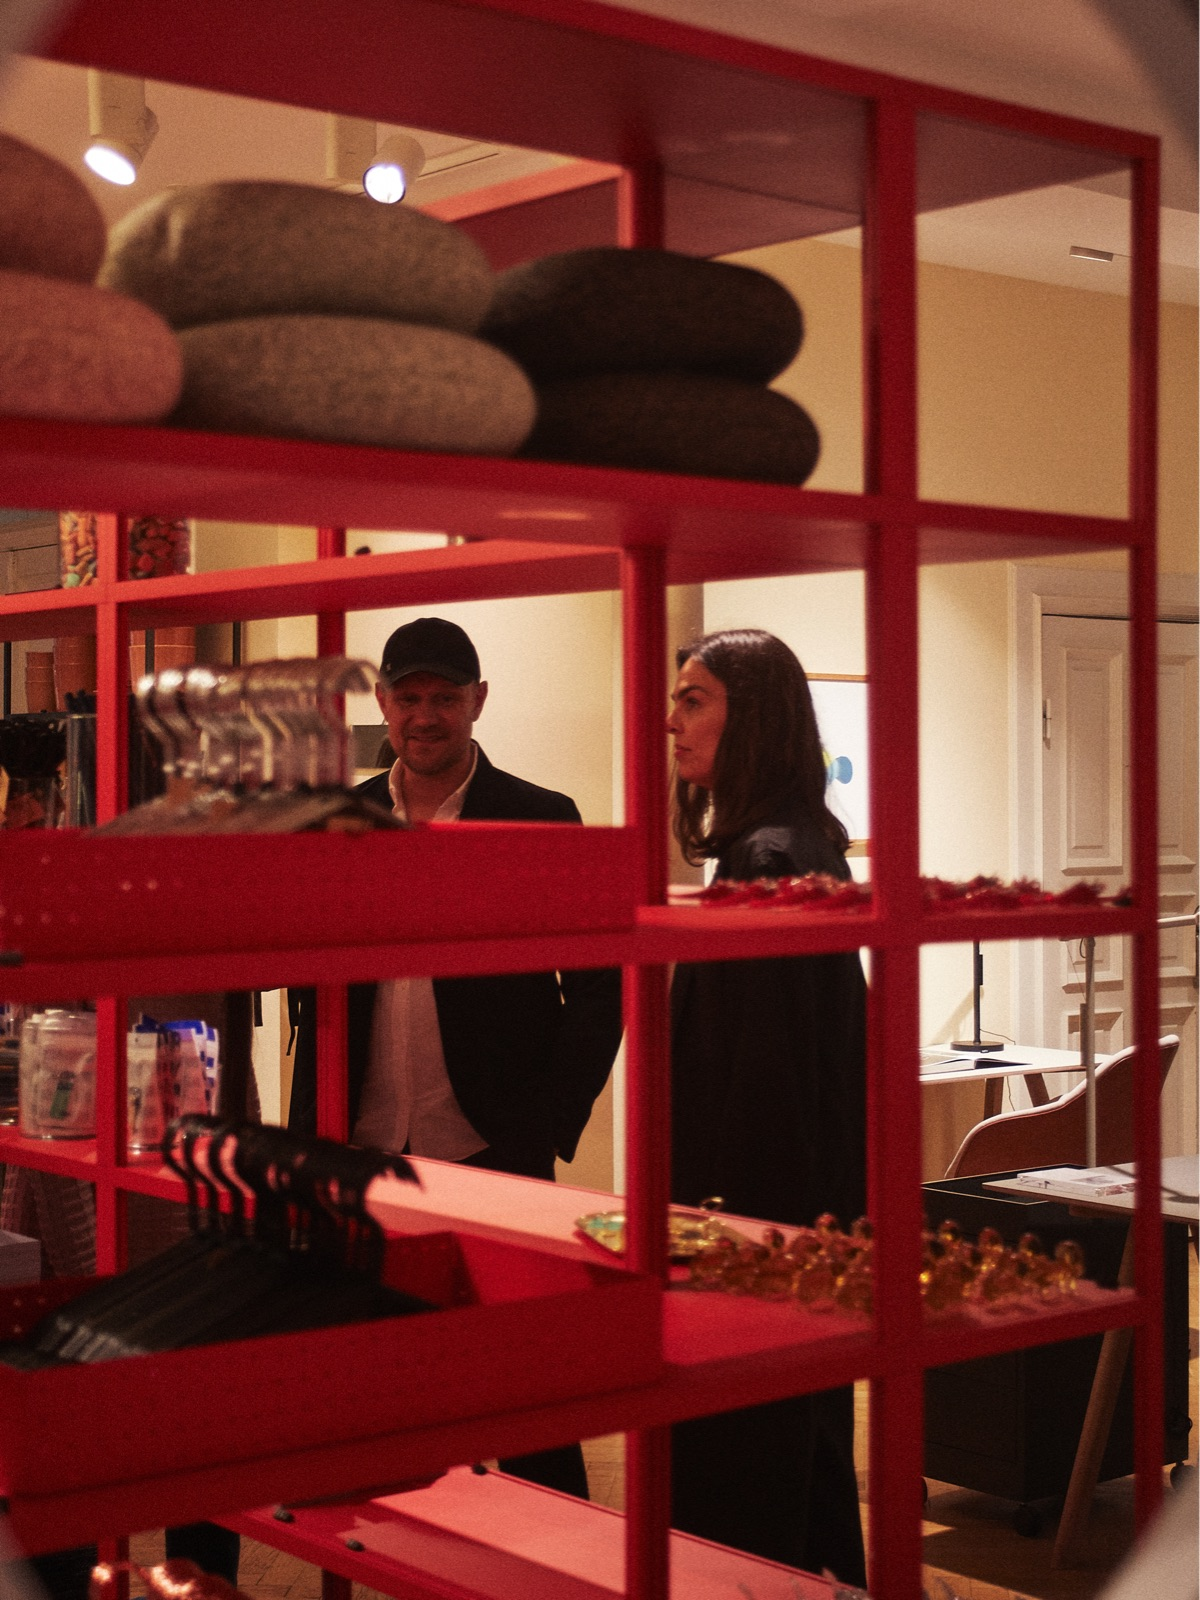 Rolf and Mette Hay are seen in their flagship store, HAY House, through a red shelf dotted with accessories.